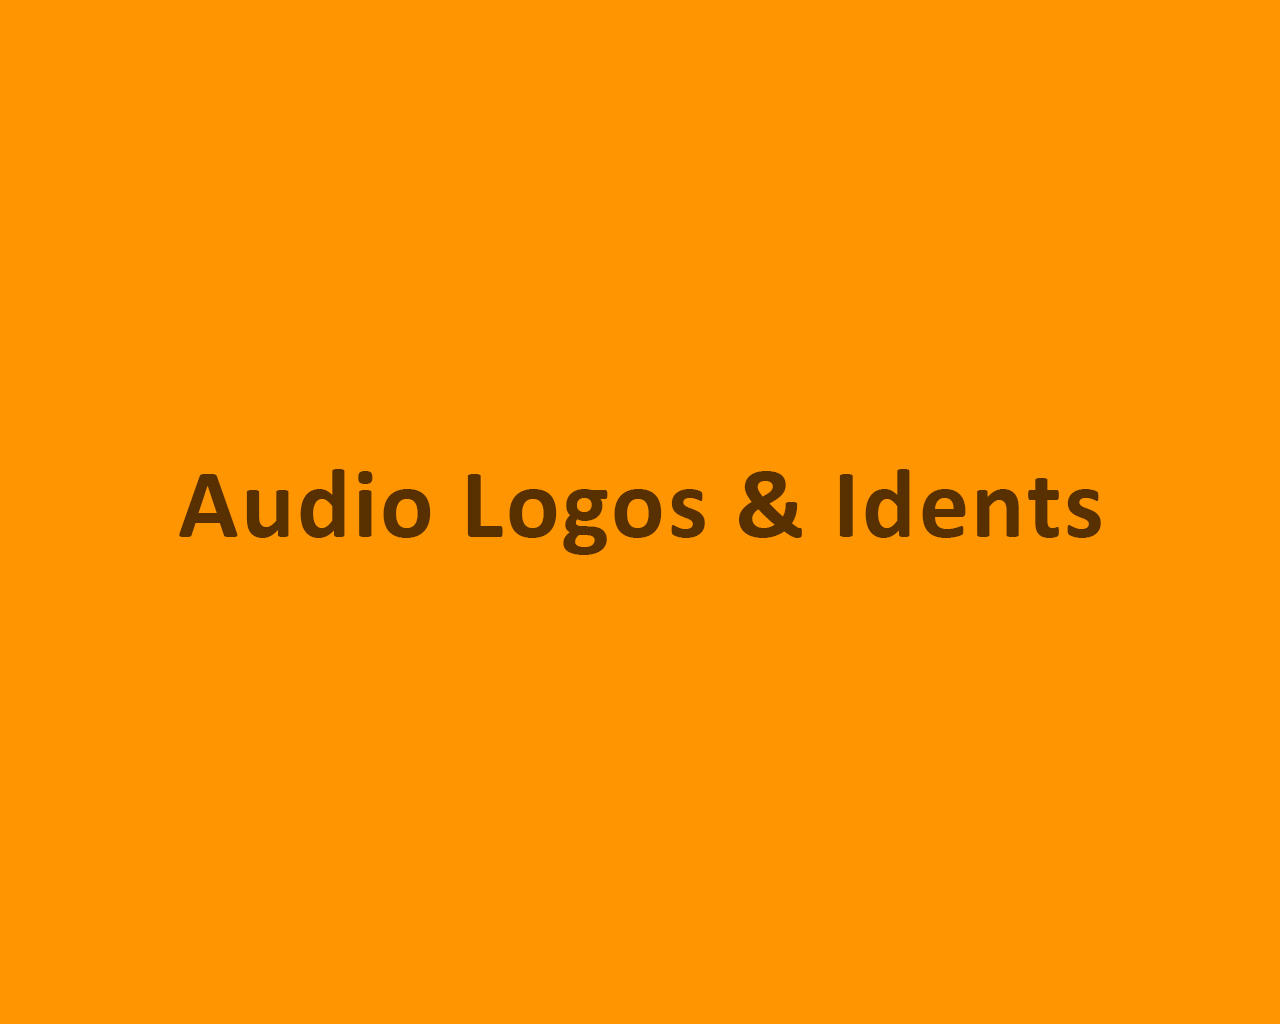 Audio Logos & Idents by odiusfly - 105958